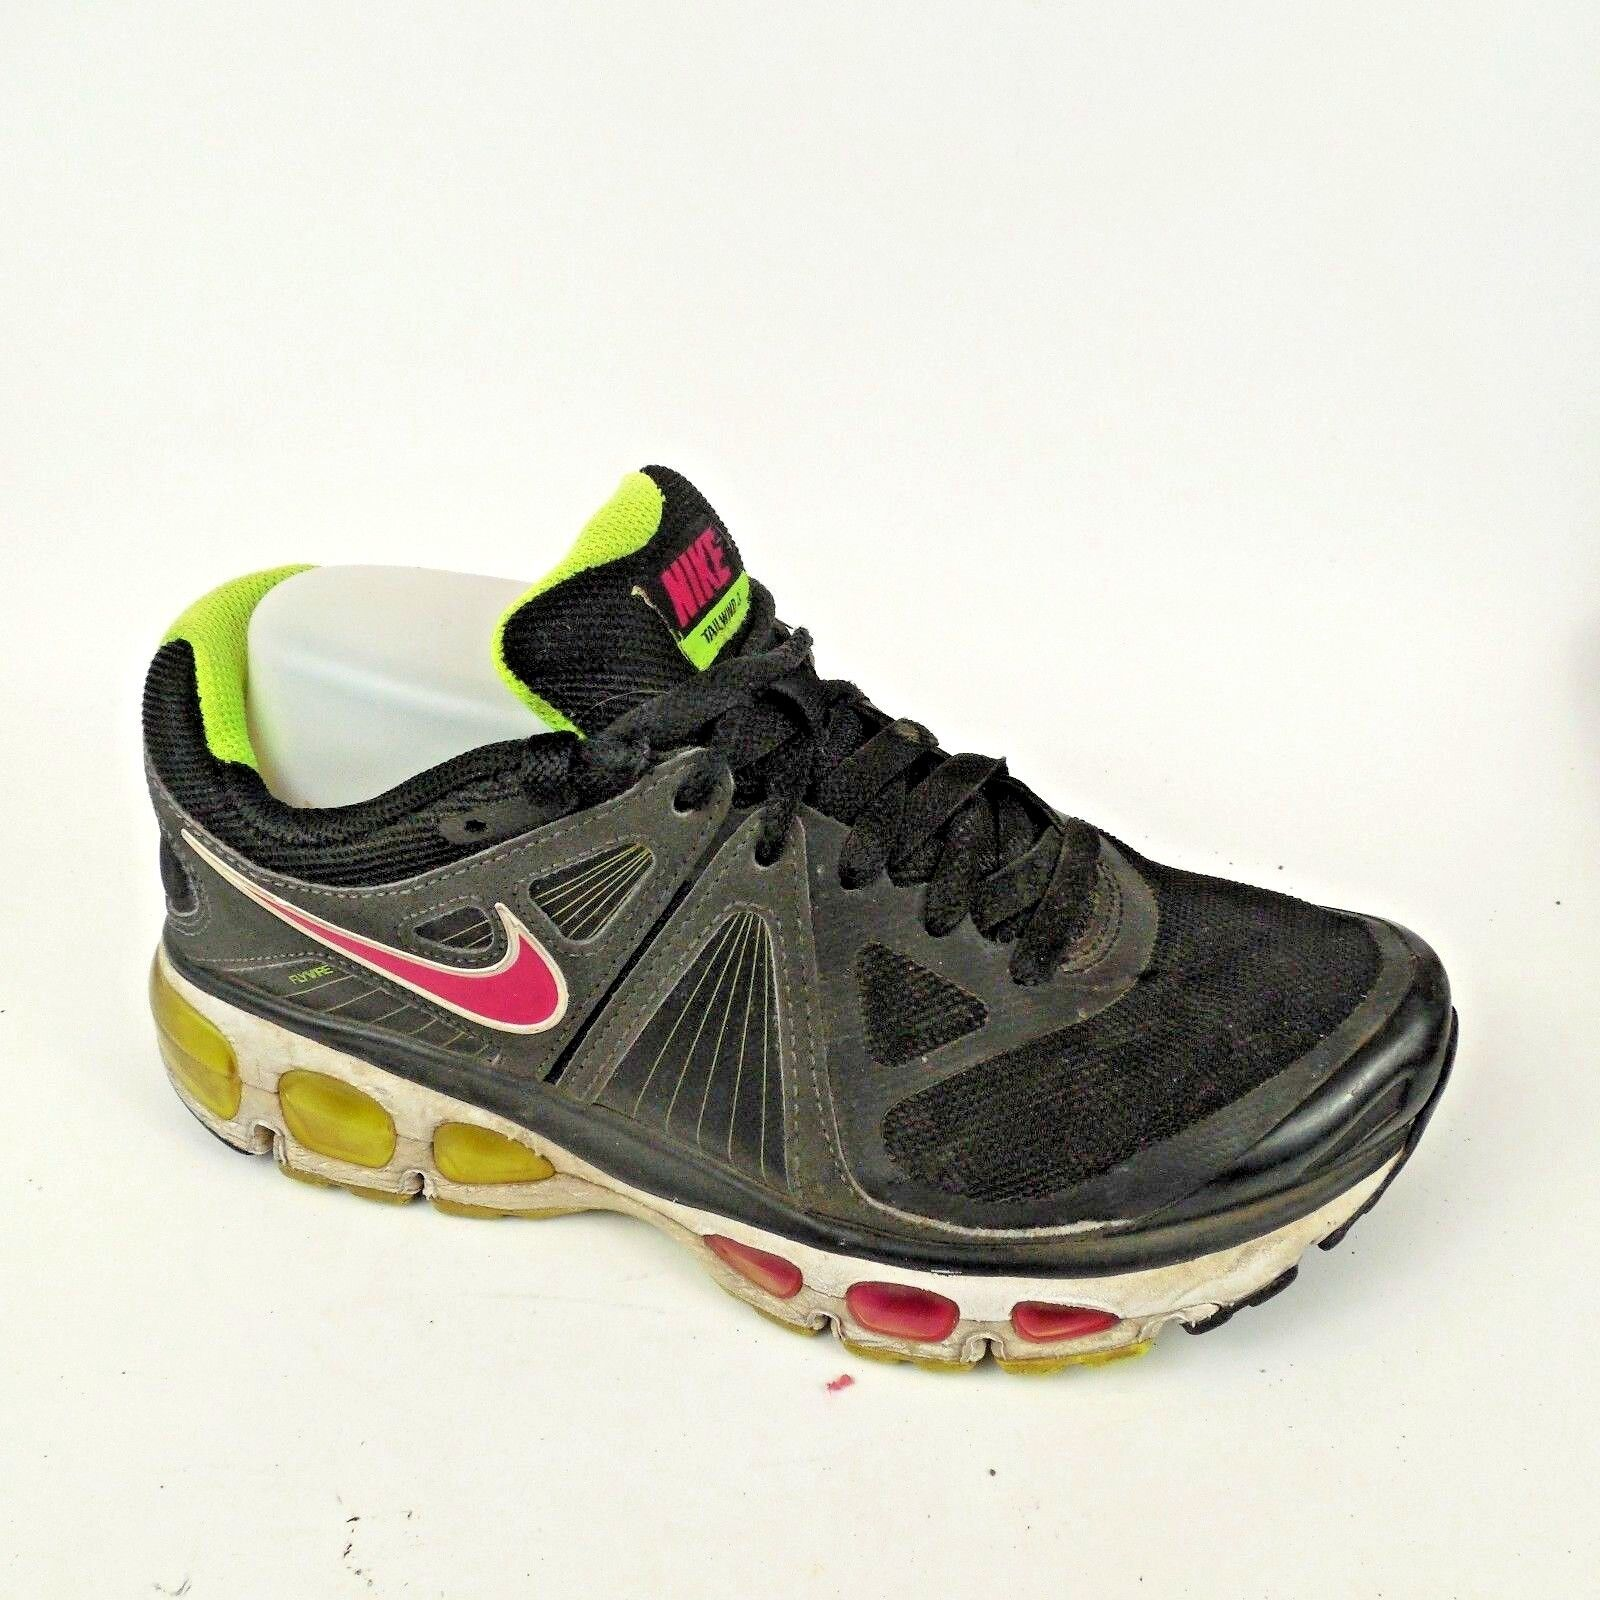 Nike Air Max Tailwind 4 Black Fireberry Running Shoes Women 7.5 M 453975-067 GUC The latest discount shoes for men and women